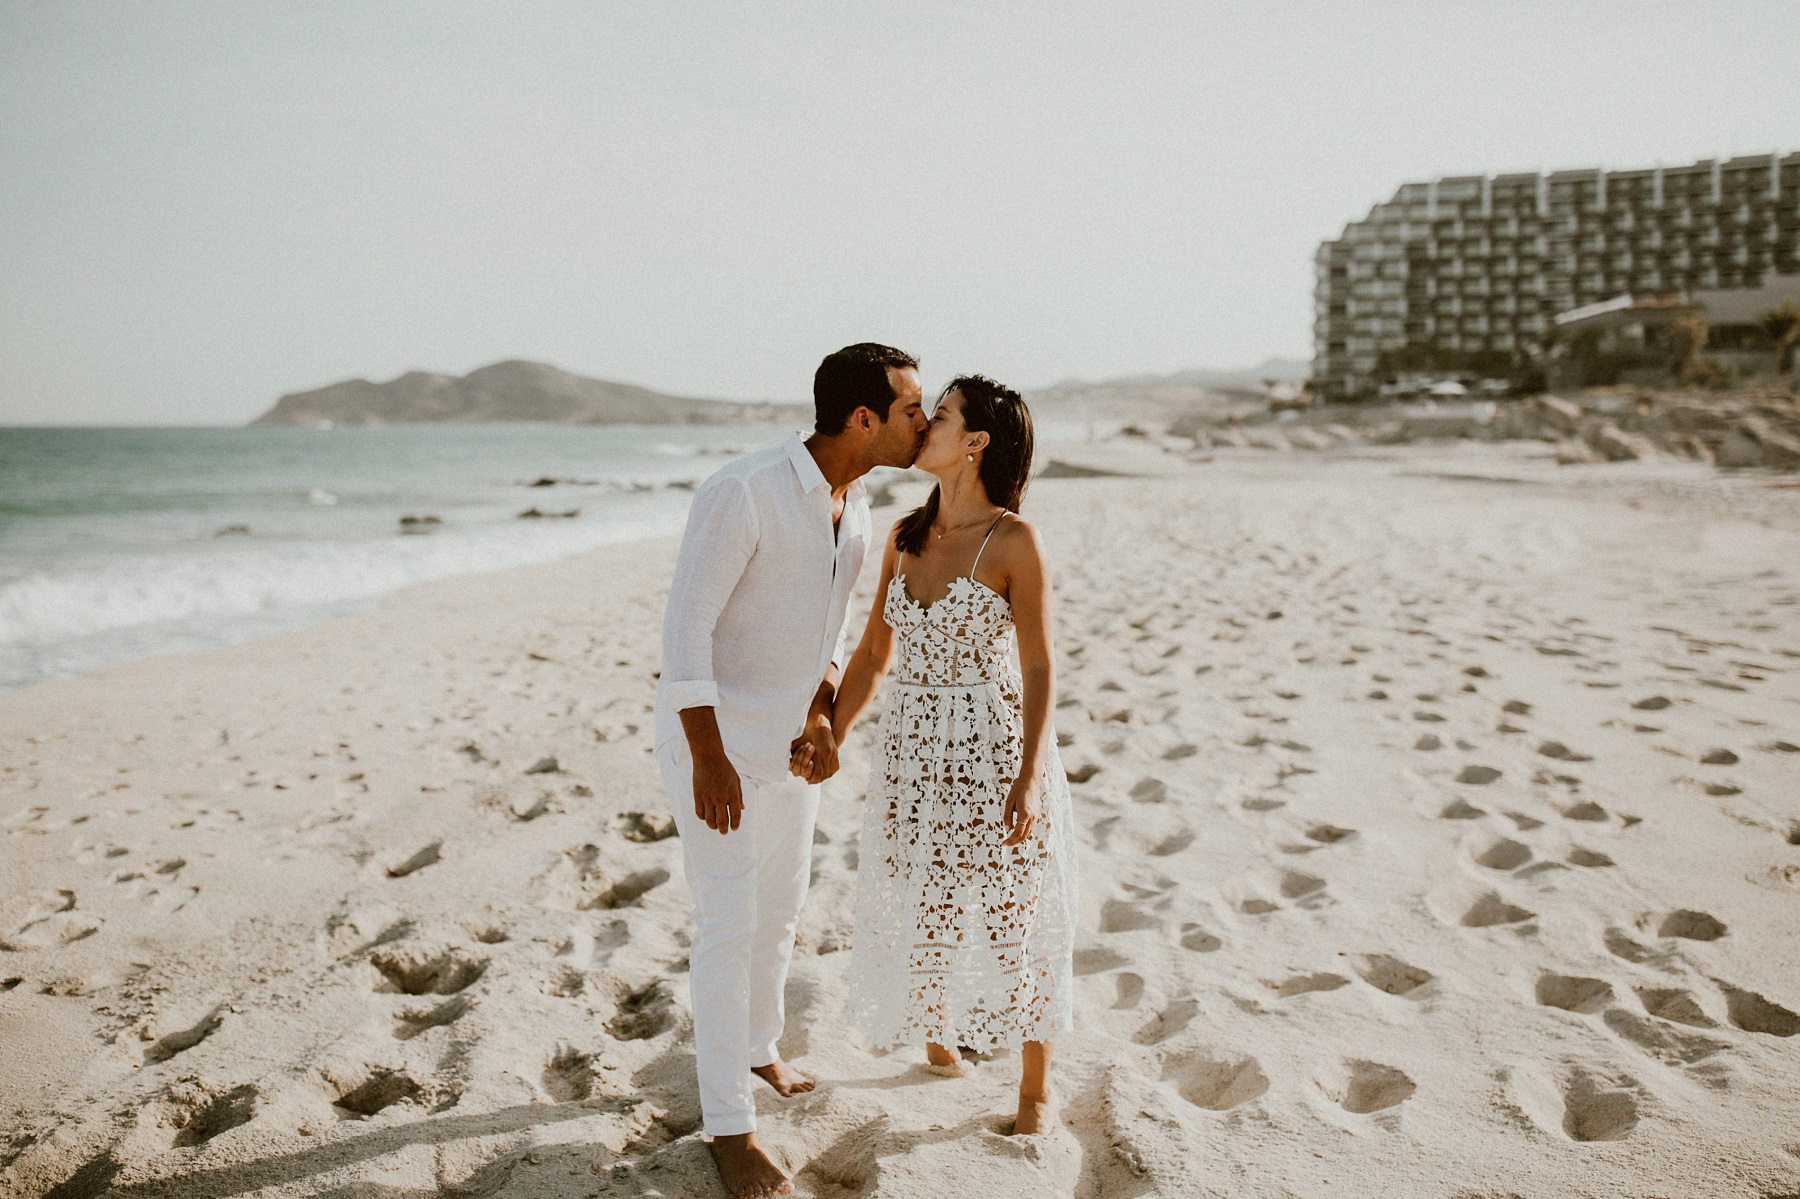 beach wedding photos private villas for rent for weddings cabo elena damy wedding planners